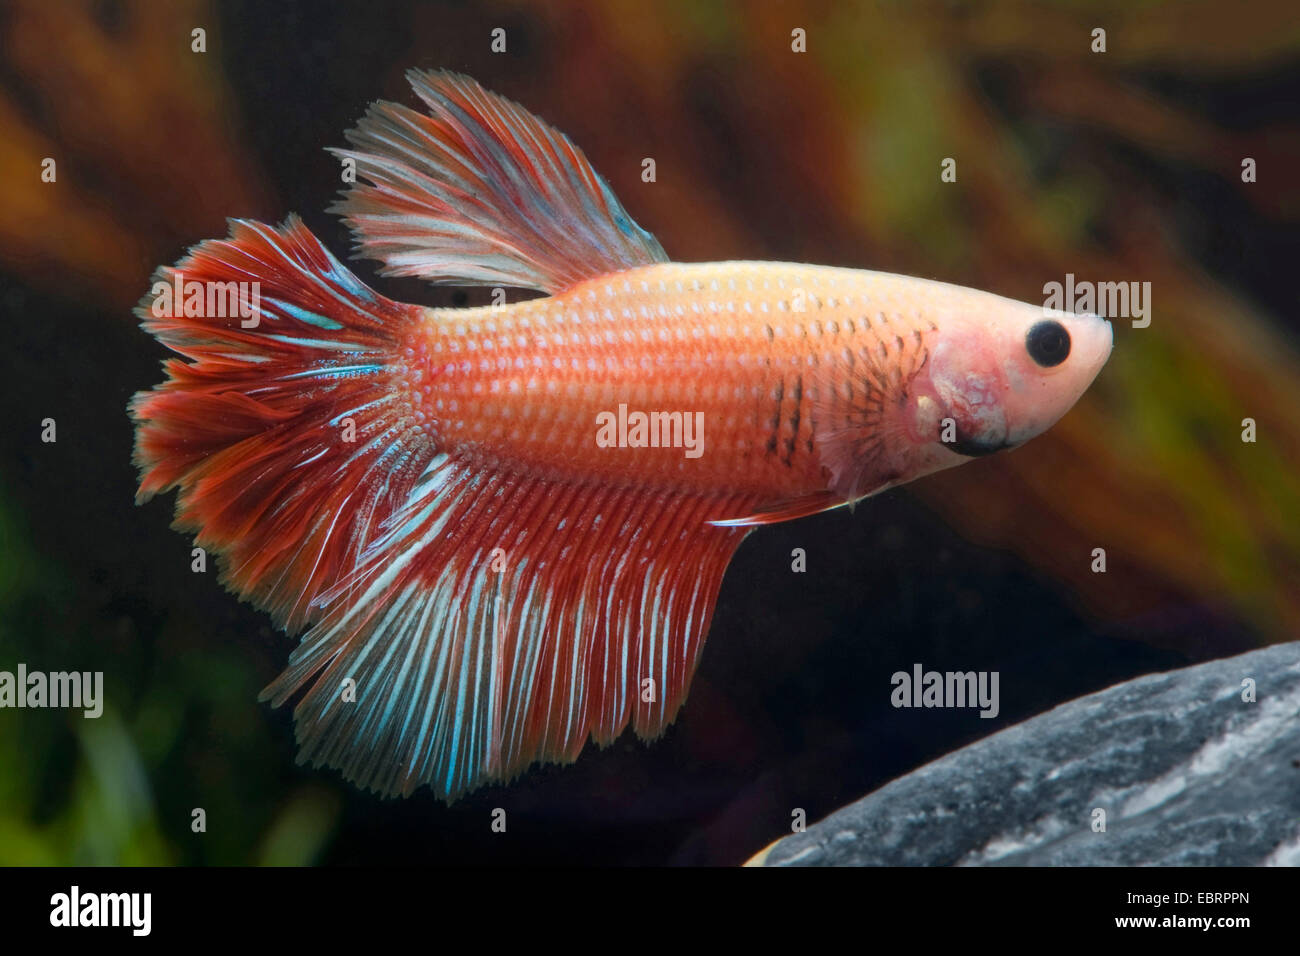 Siamese fighting fish, Siamese fighter (Betta splendens), breed Halfmoon Mirabelle - Stock Image